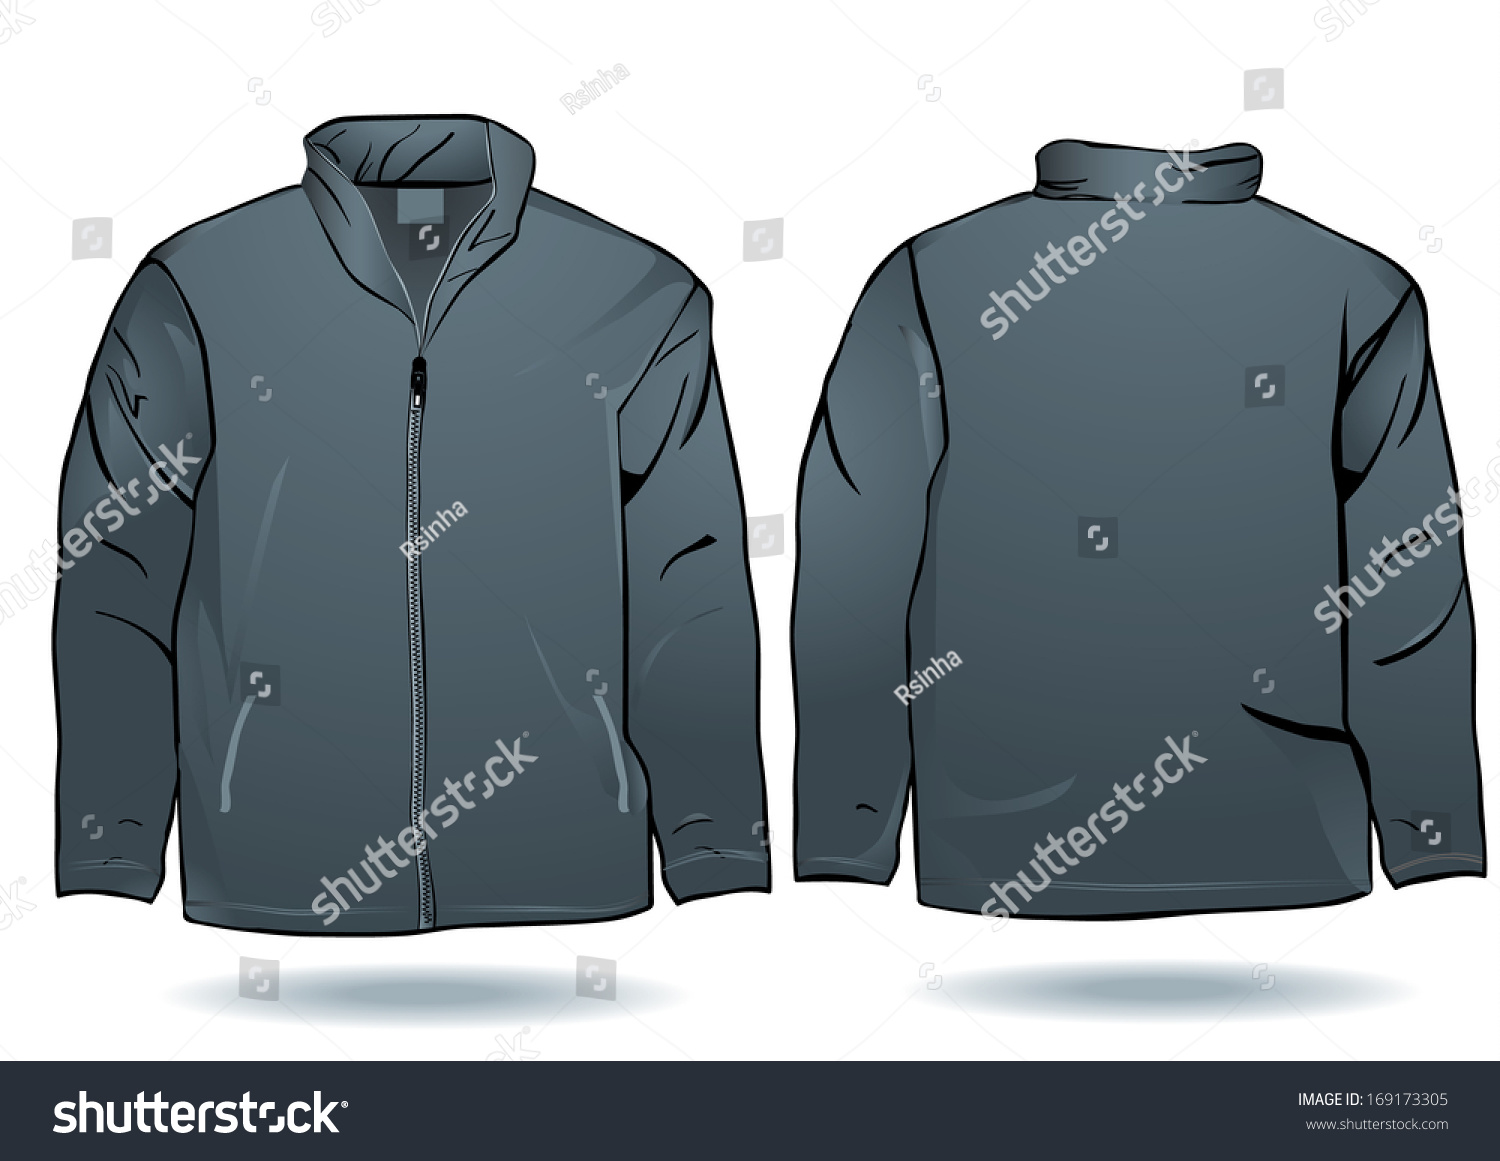 Black Jacket Template kmRs8J